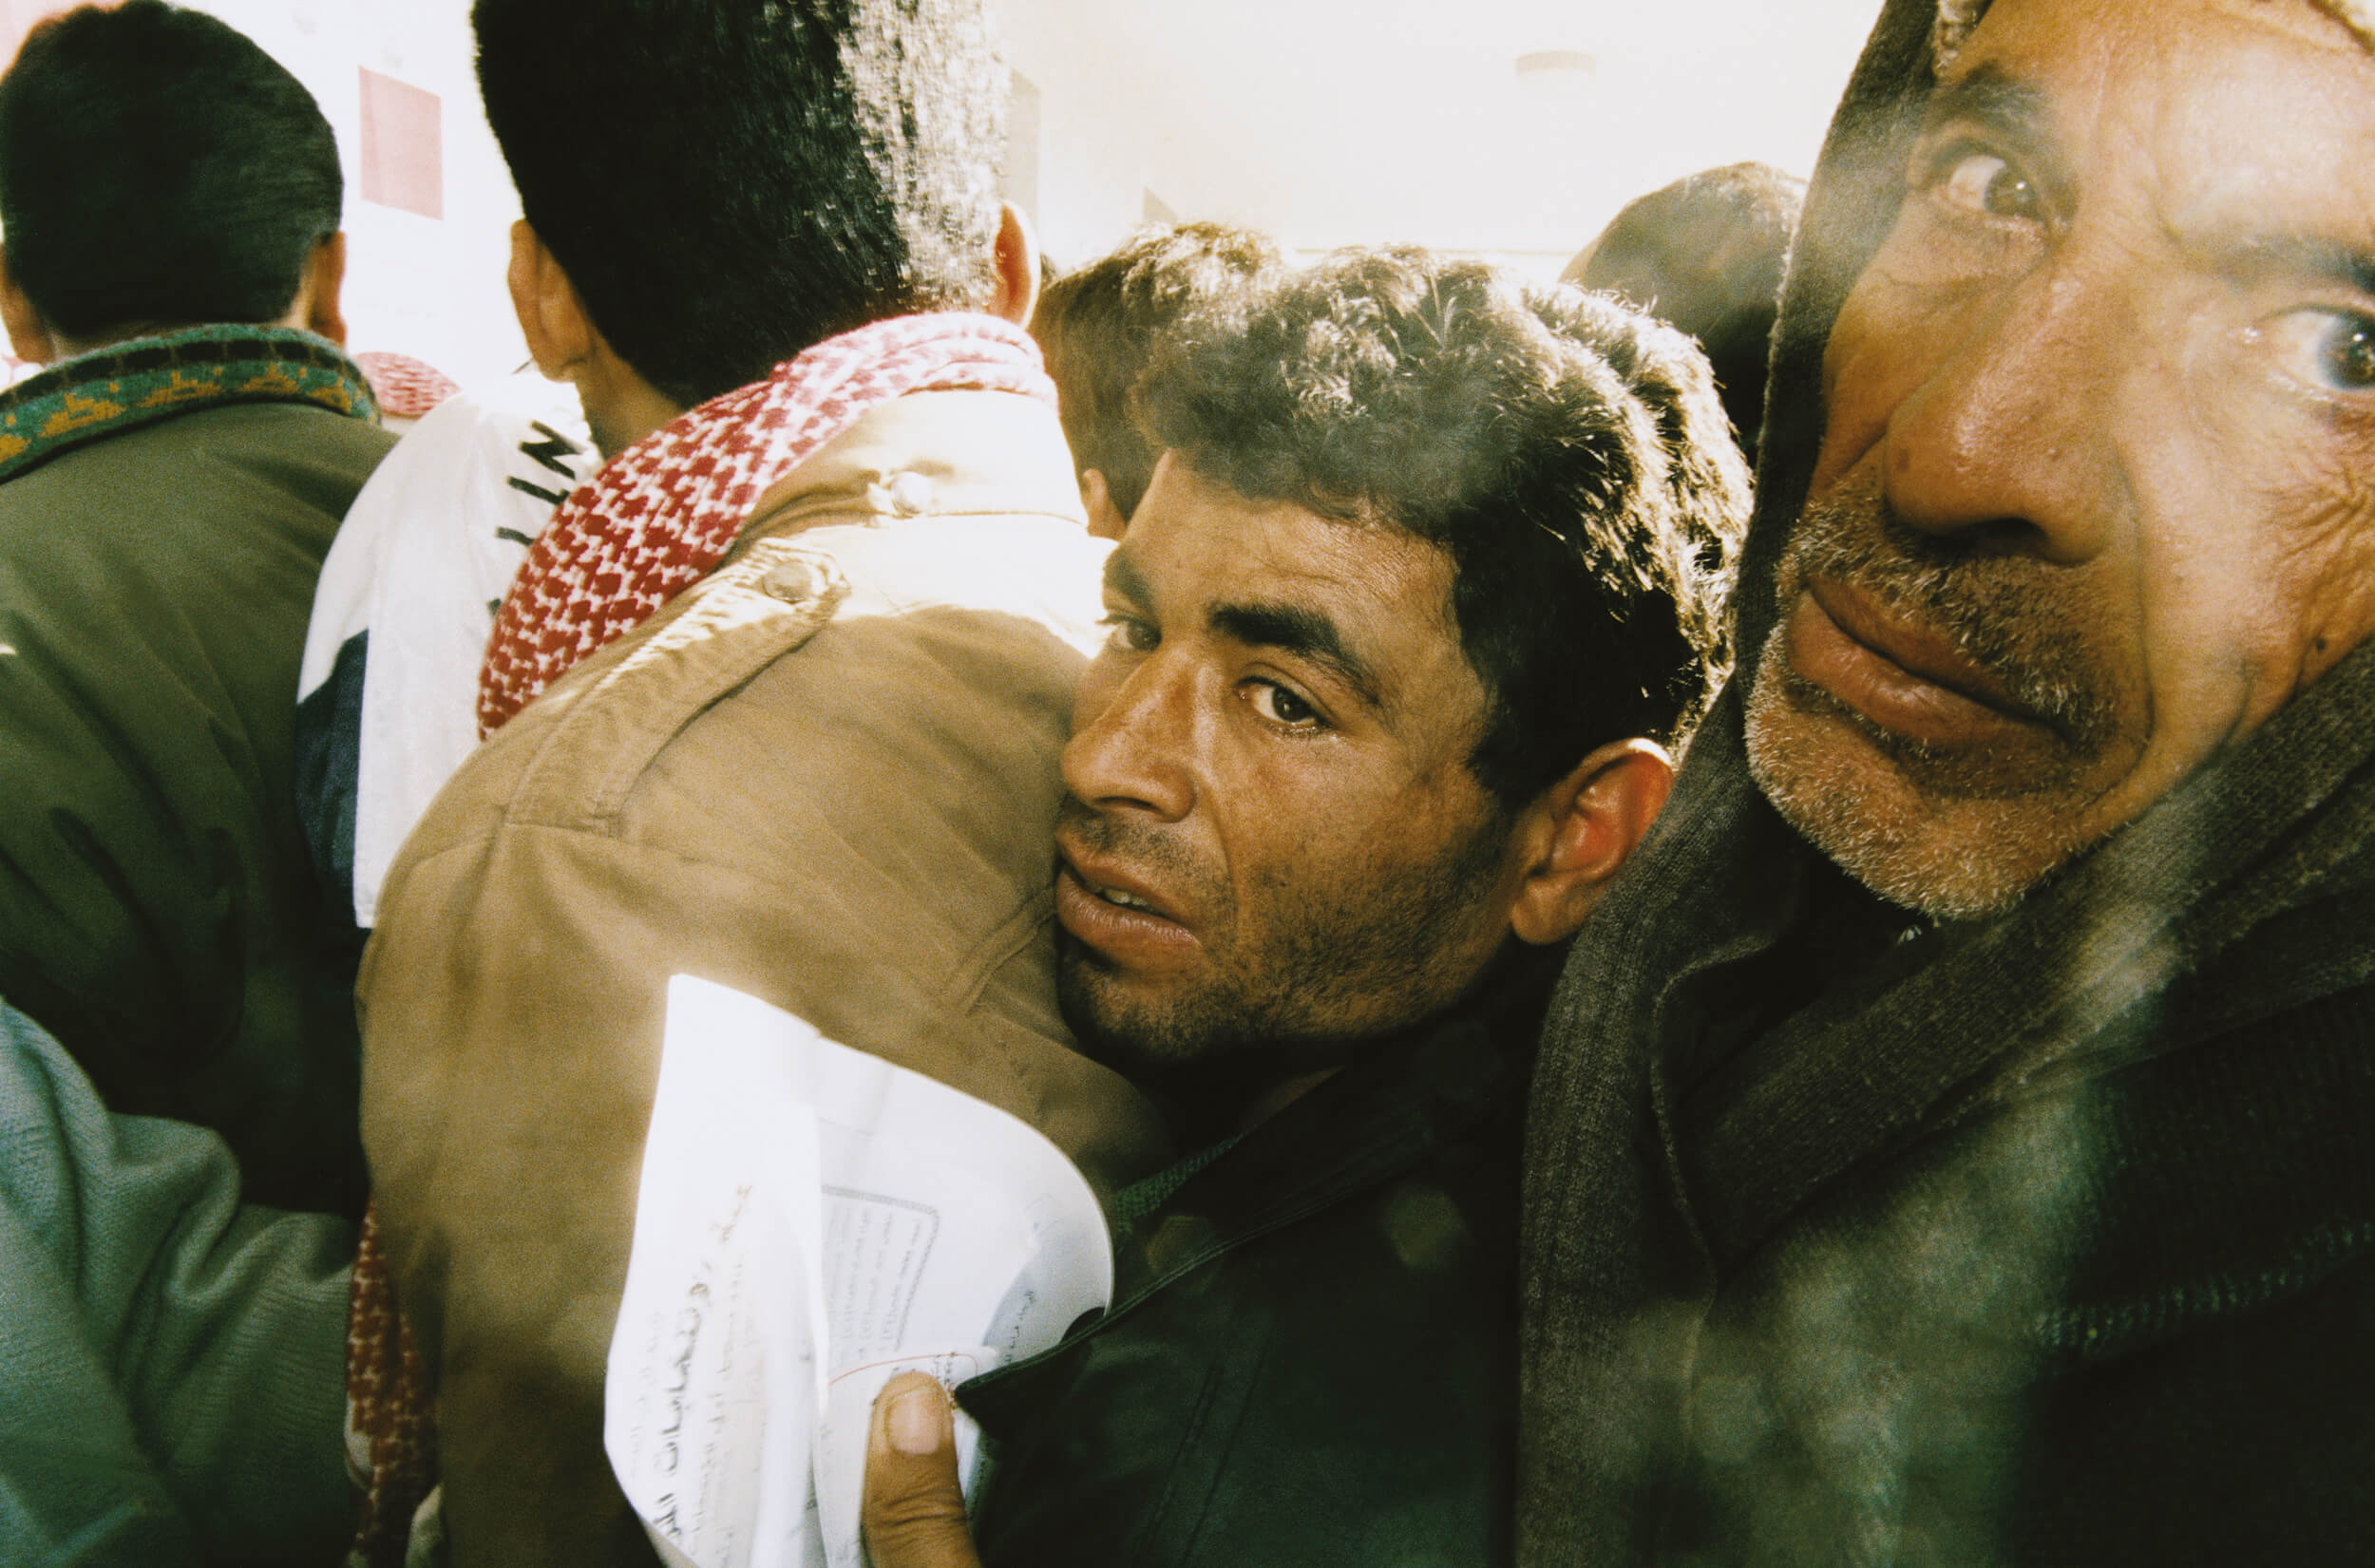 Gaza January 1996. Palestinians vote in the first Palestinian elections ever.